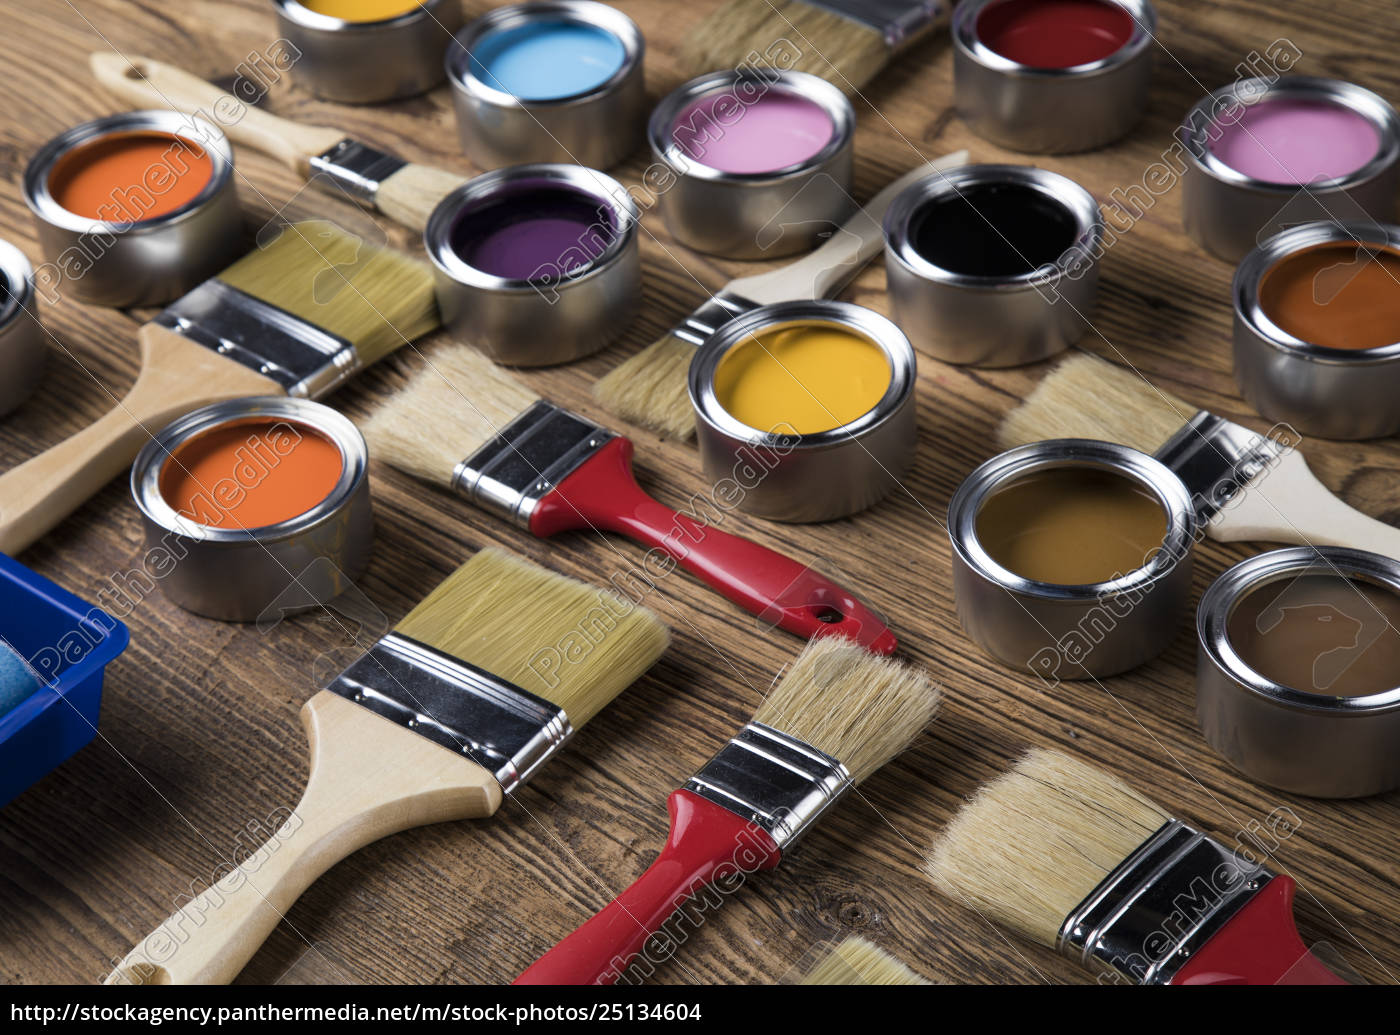 painting, tools, and, accessories - 25134604